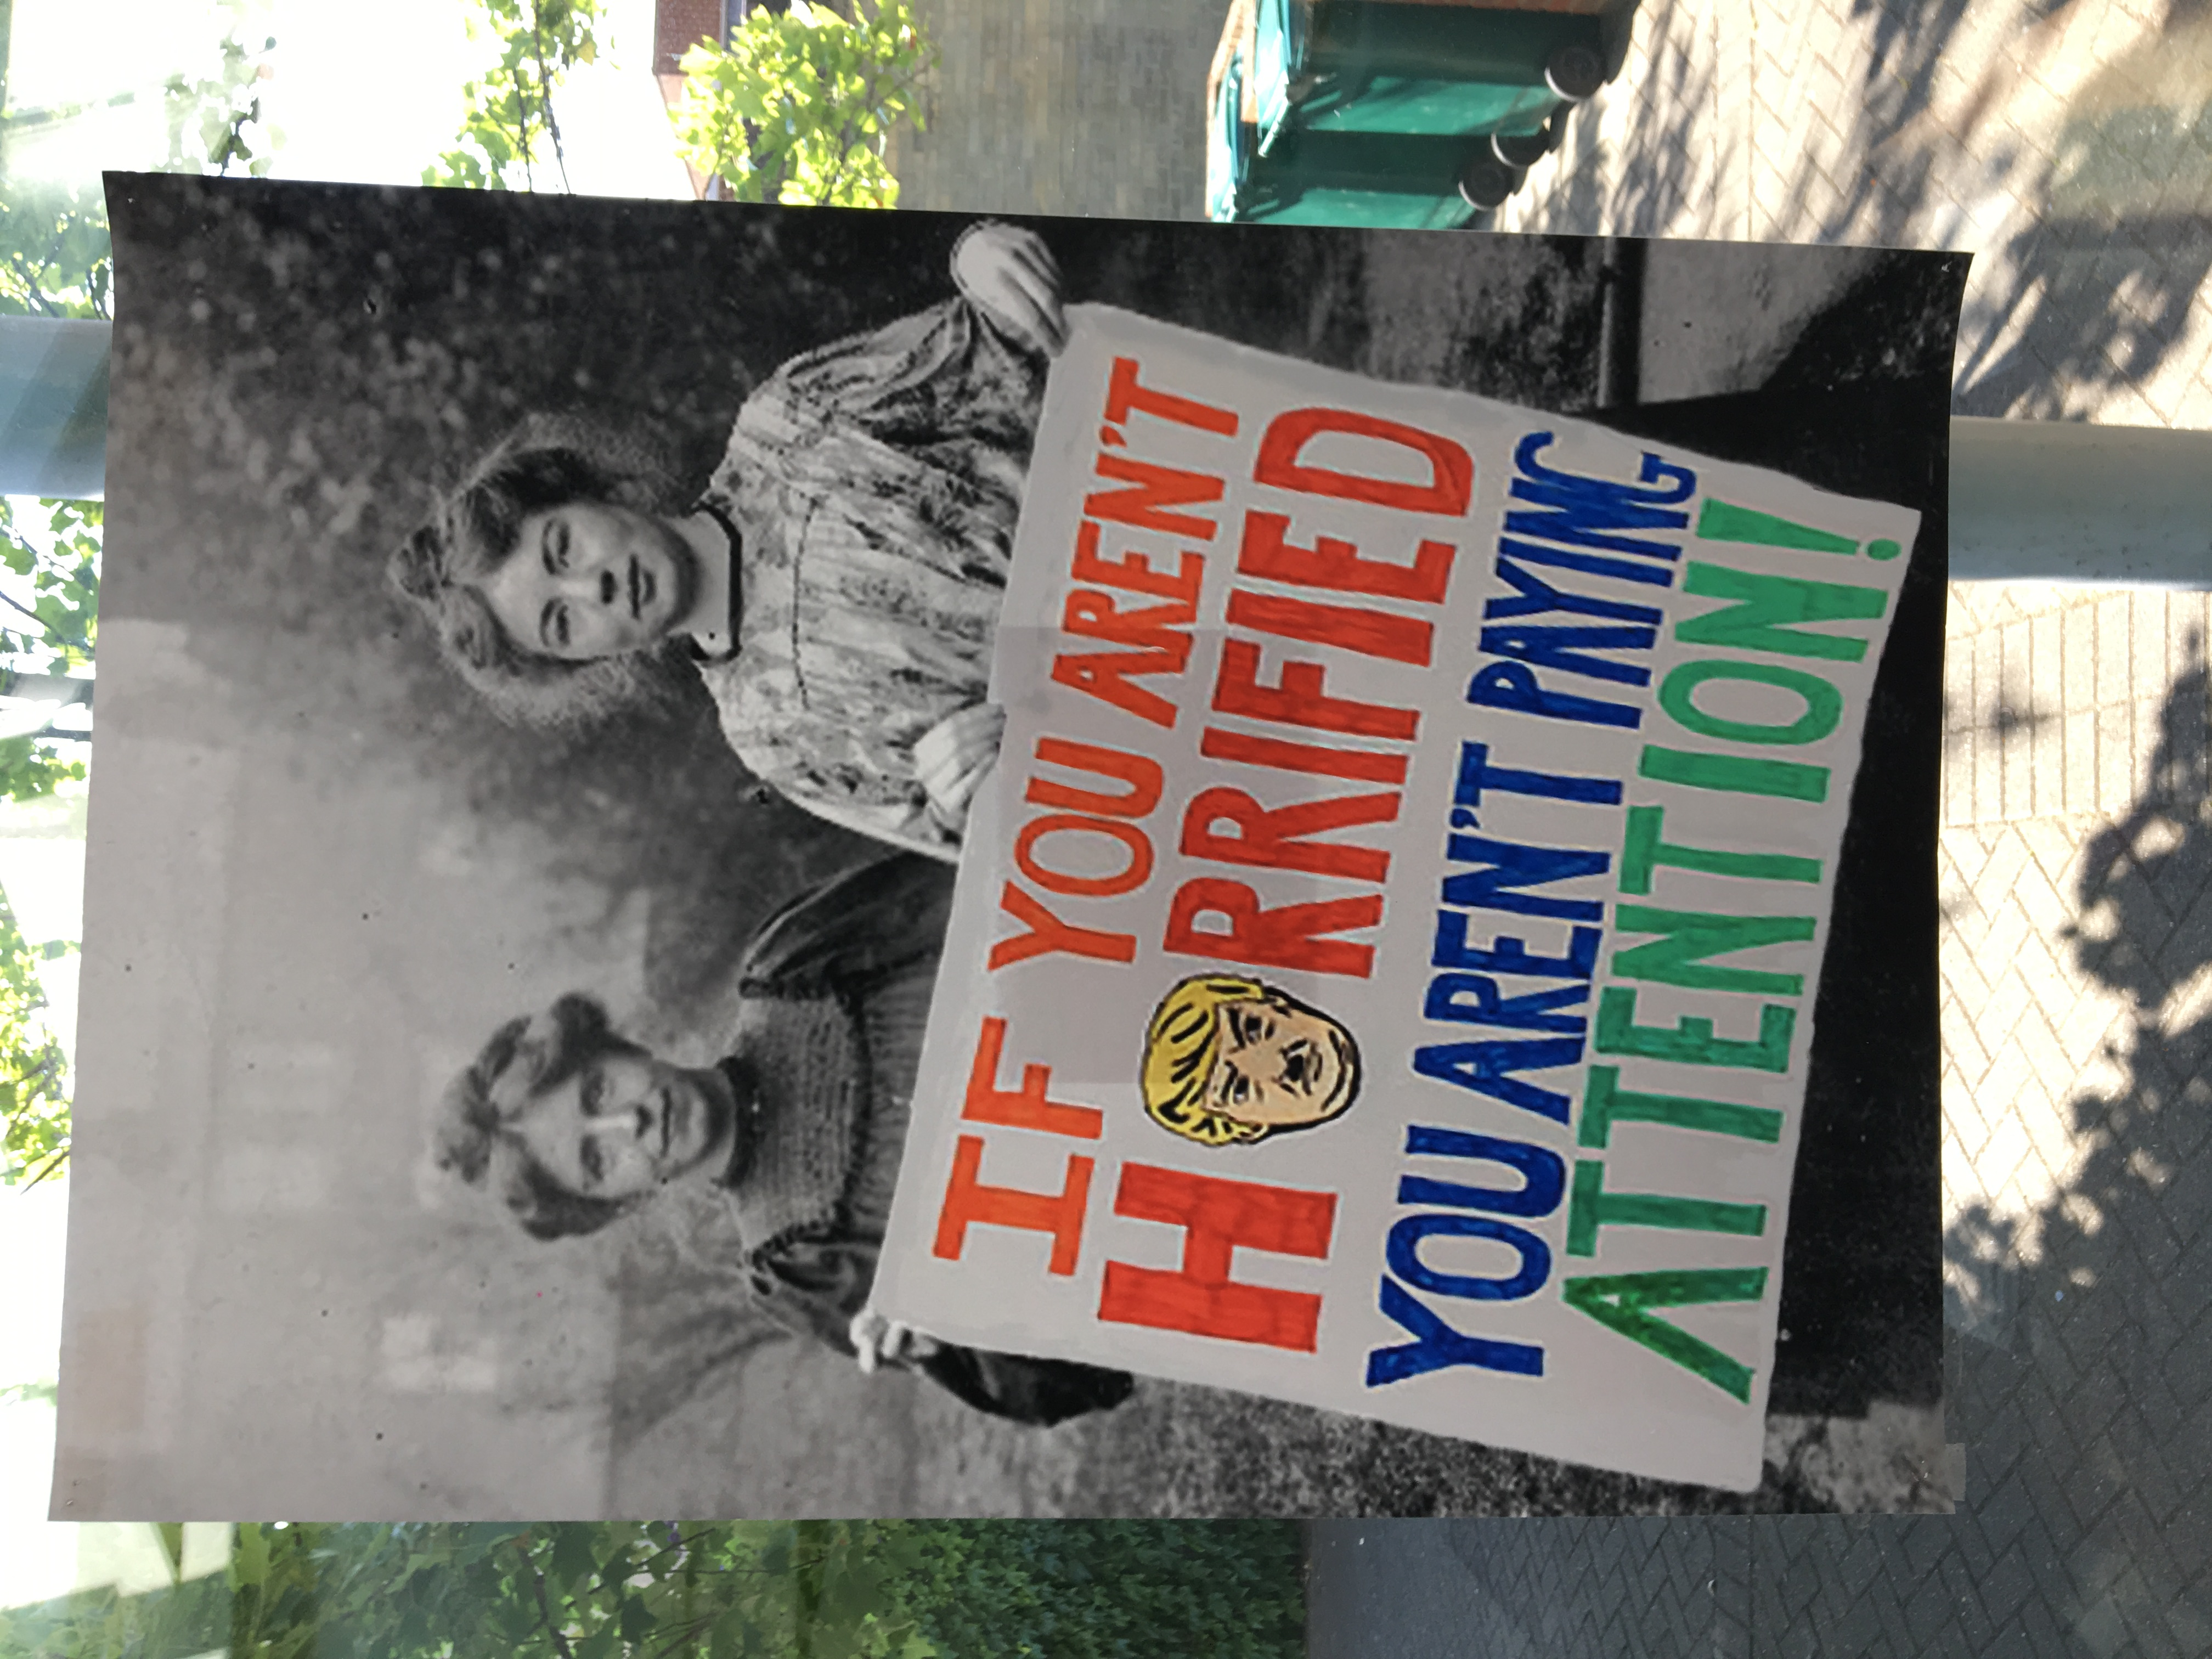 58a. Suffragette Marches, Felicity Beaumont, 40.5 x 59 x 0.1, £ offers